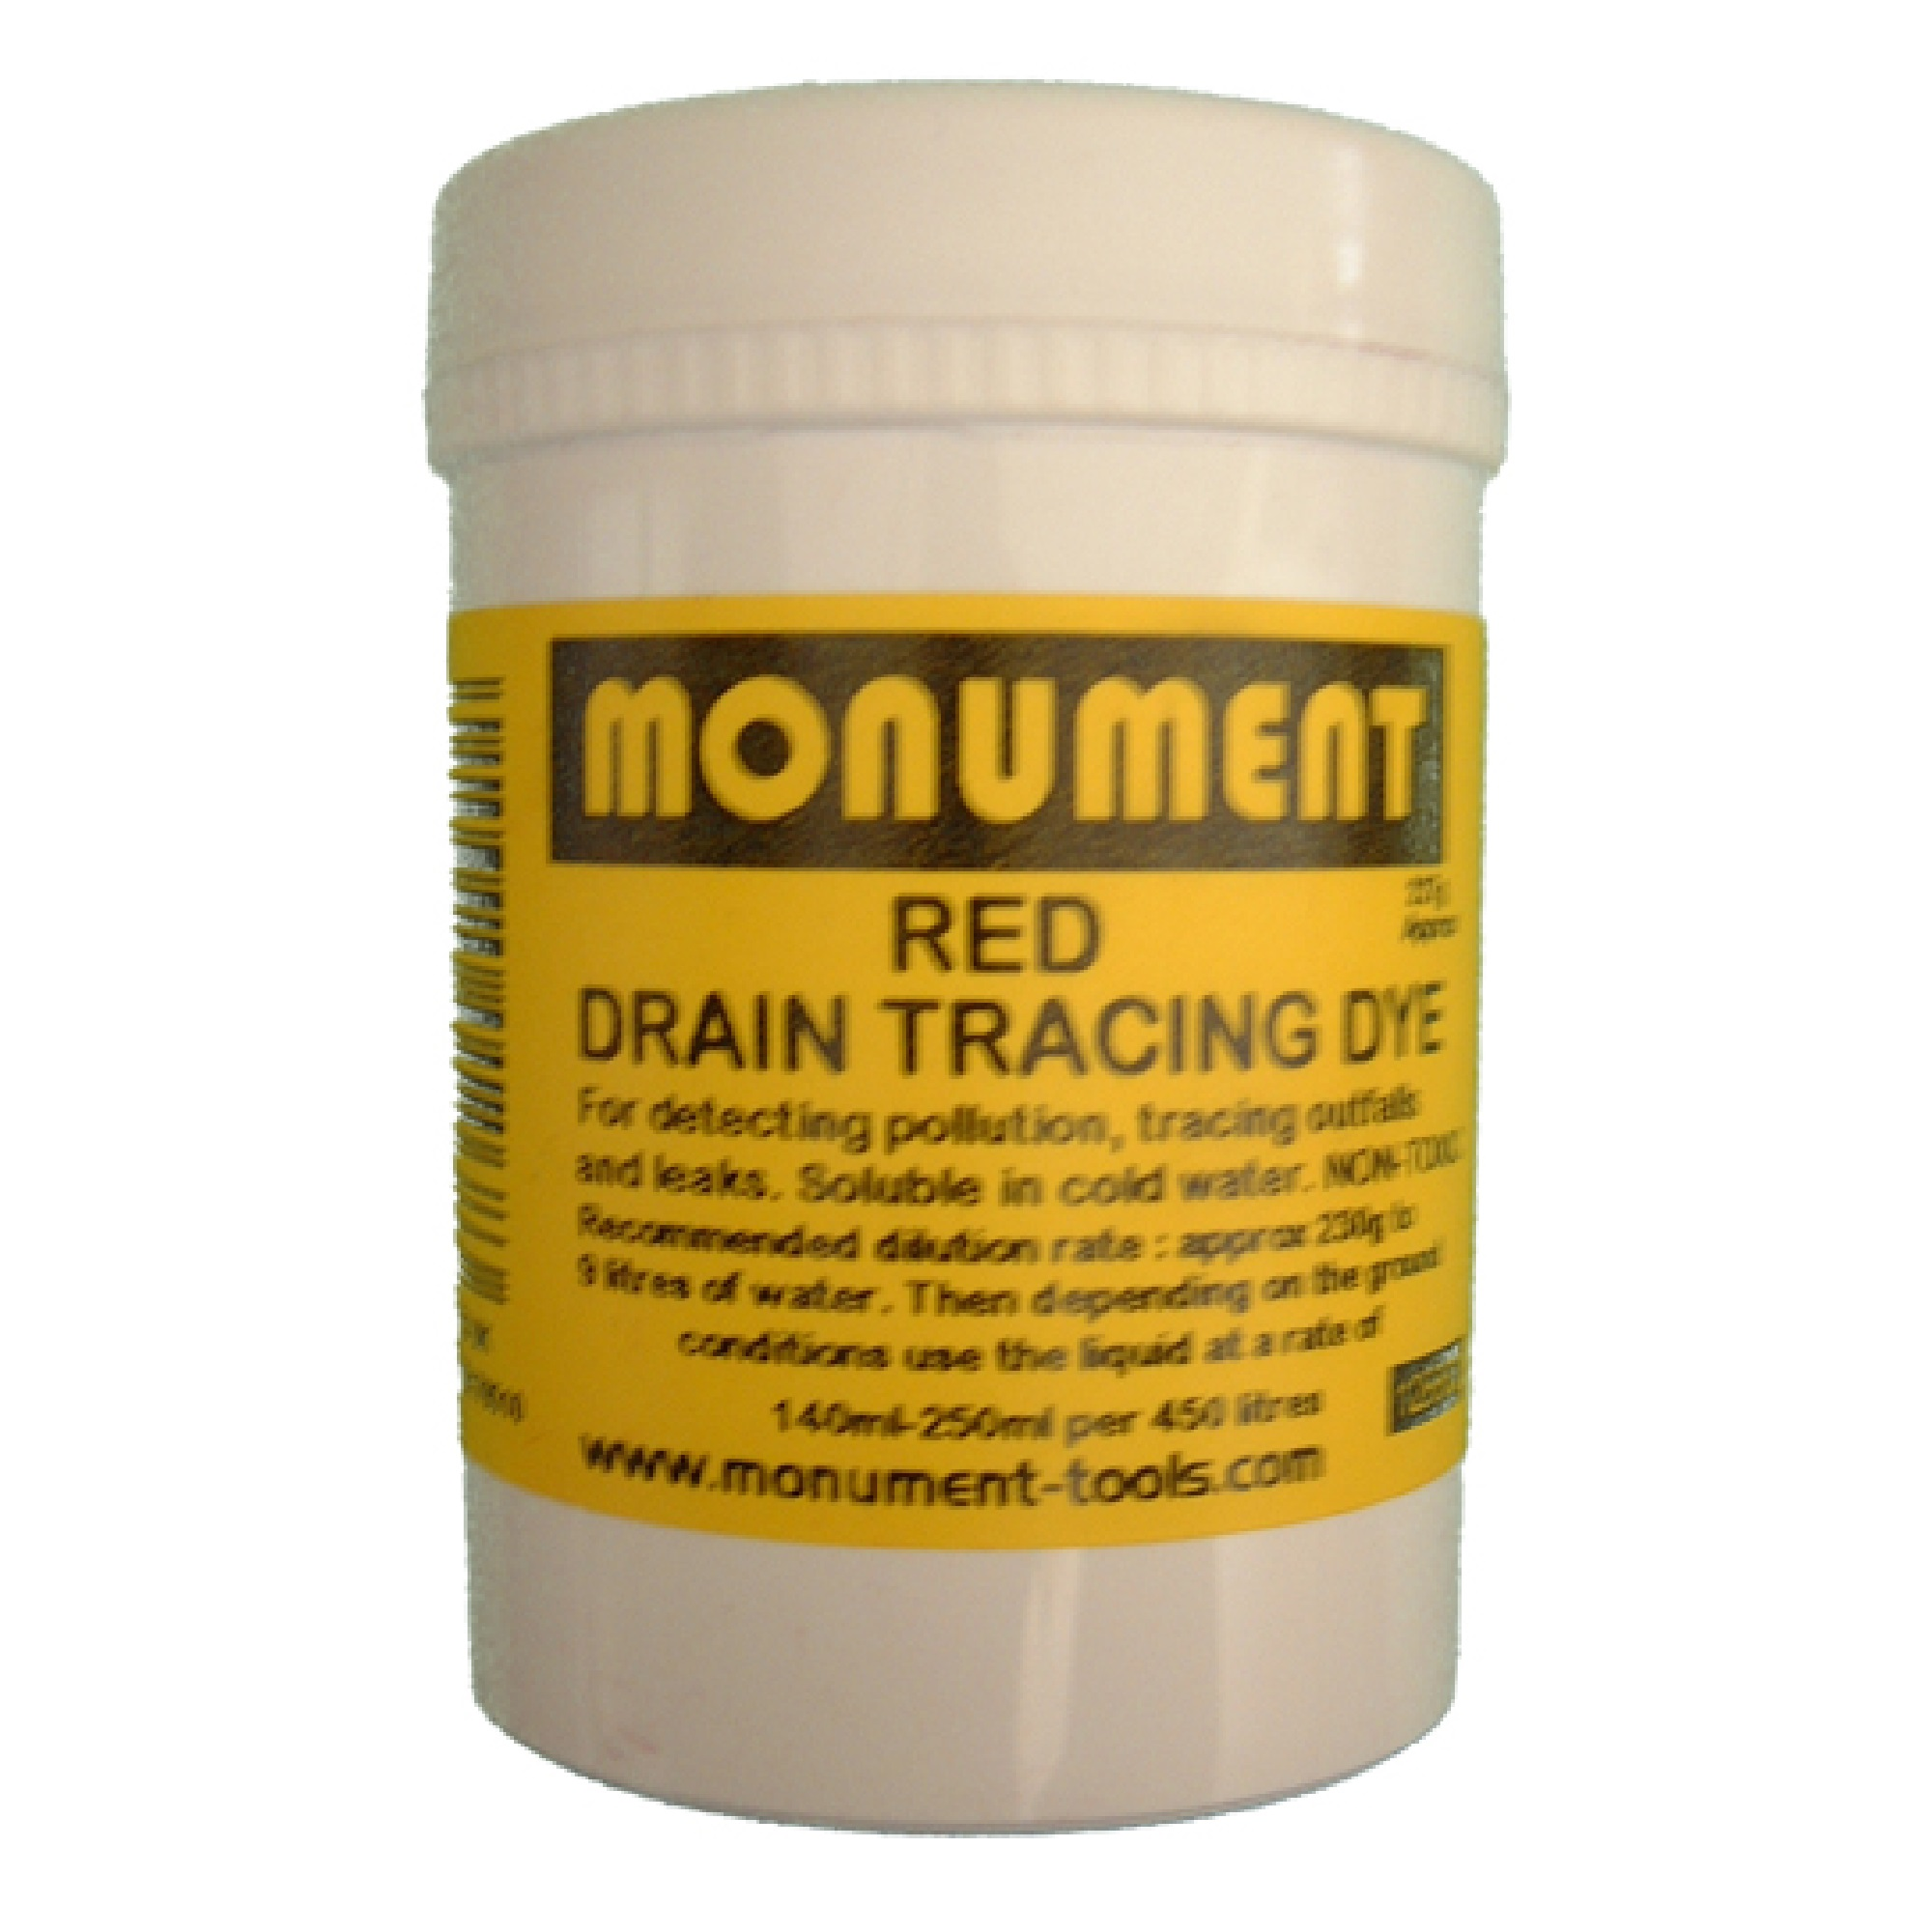 White tub of 8oz. red drain dye from Monument with yellow information label on and Monument logo